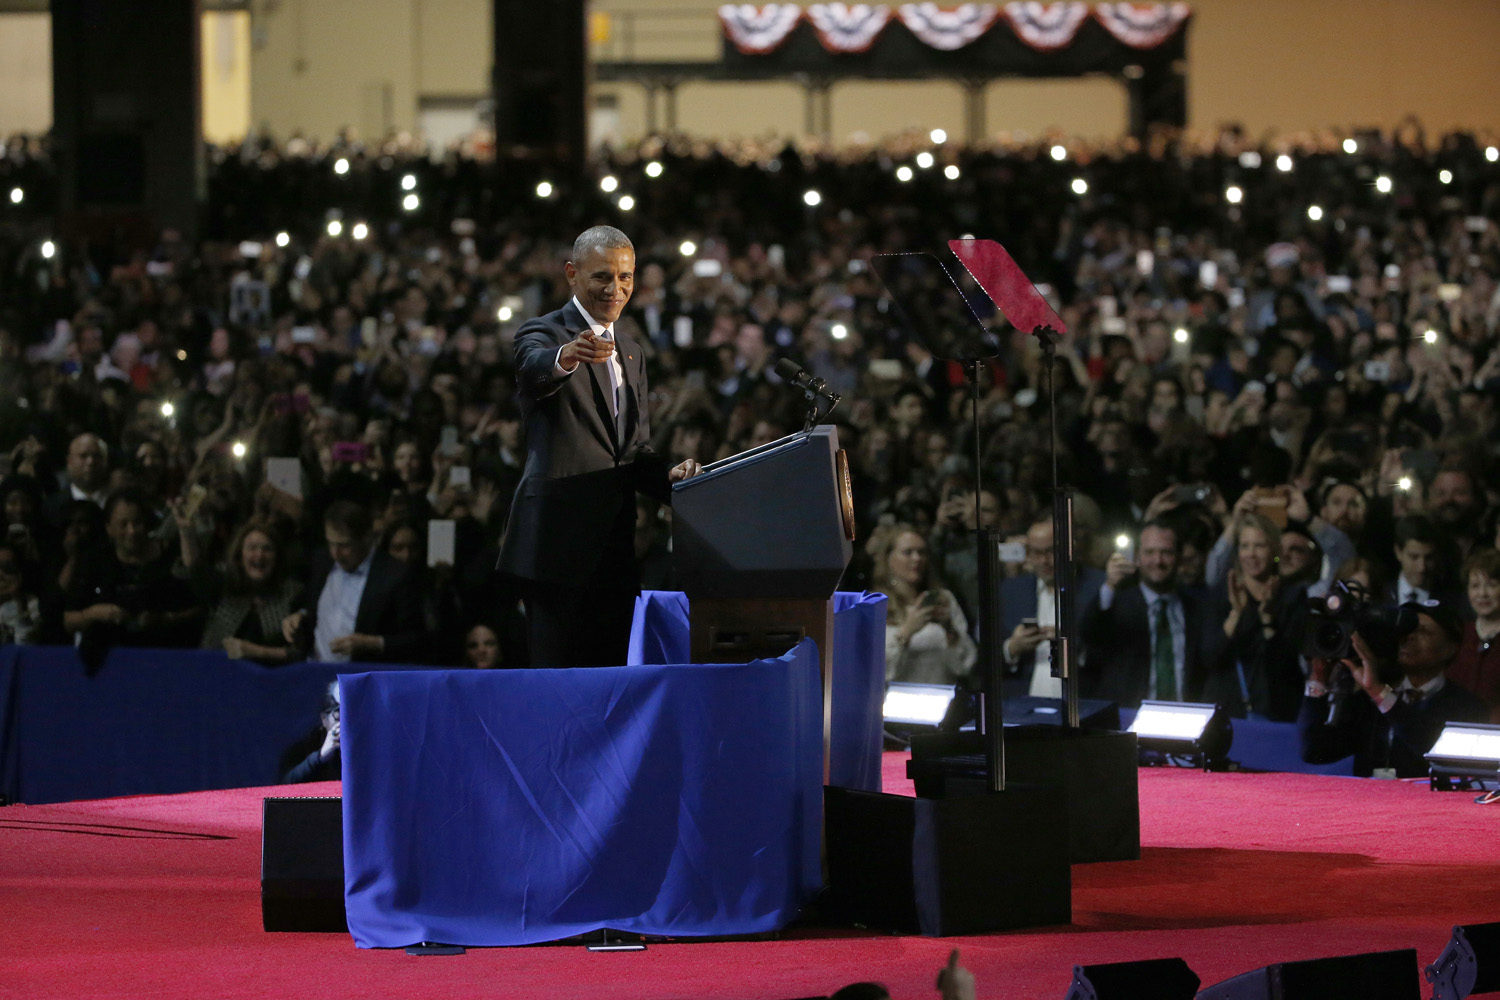 President Barack Obama speaks at McCormick Place in Chicago, Tuesday, Jan. 10, 2017, giving his presidential farewell address. (Nam Y. Huh/AP)